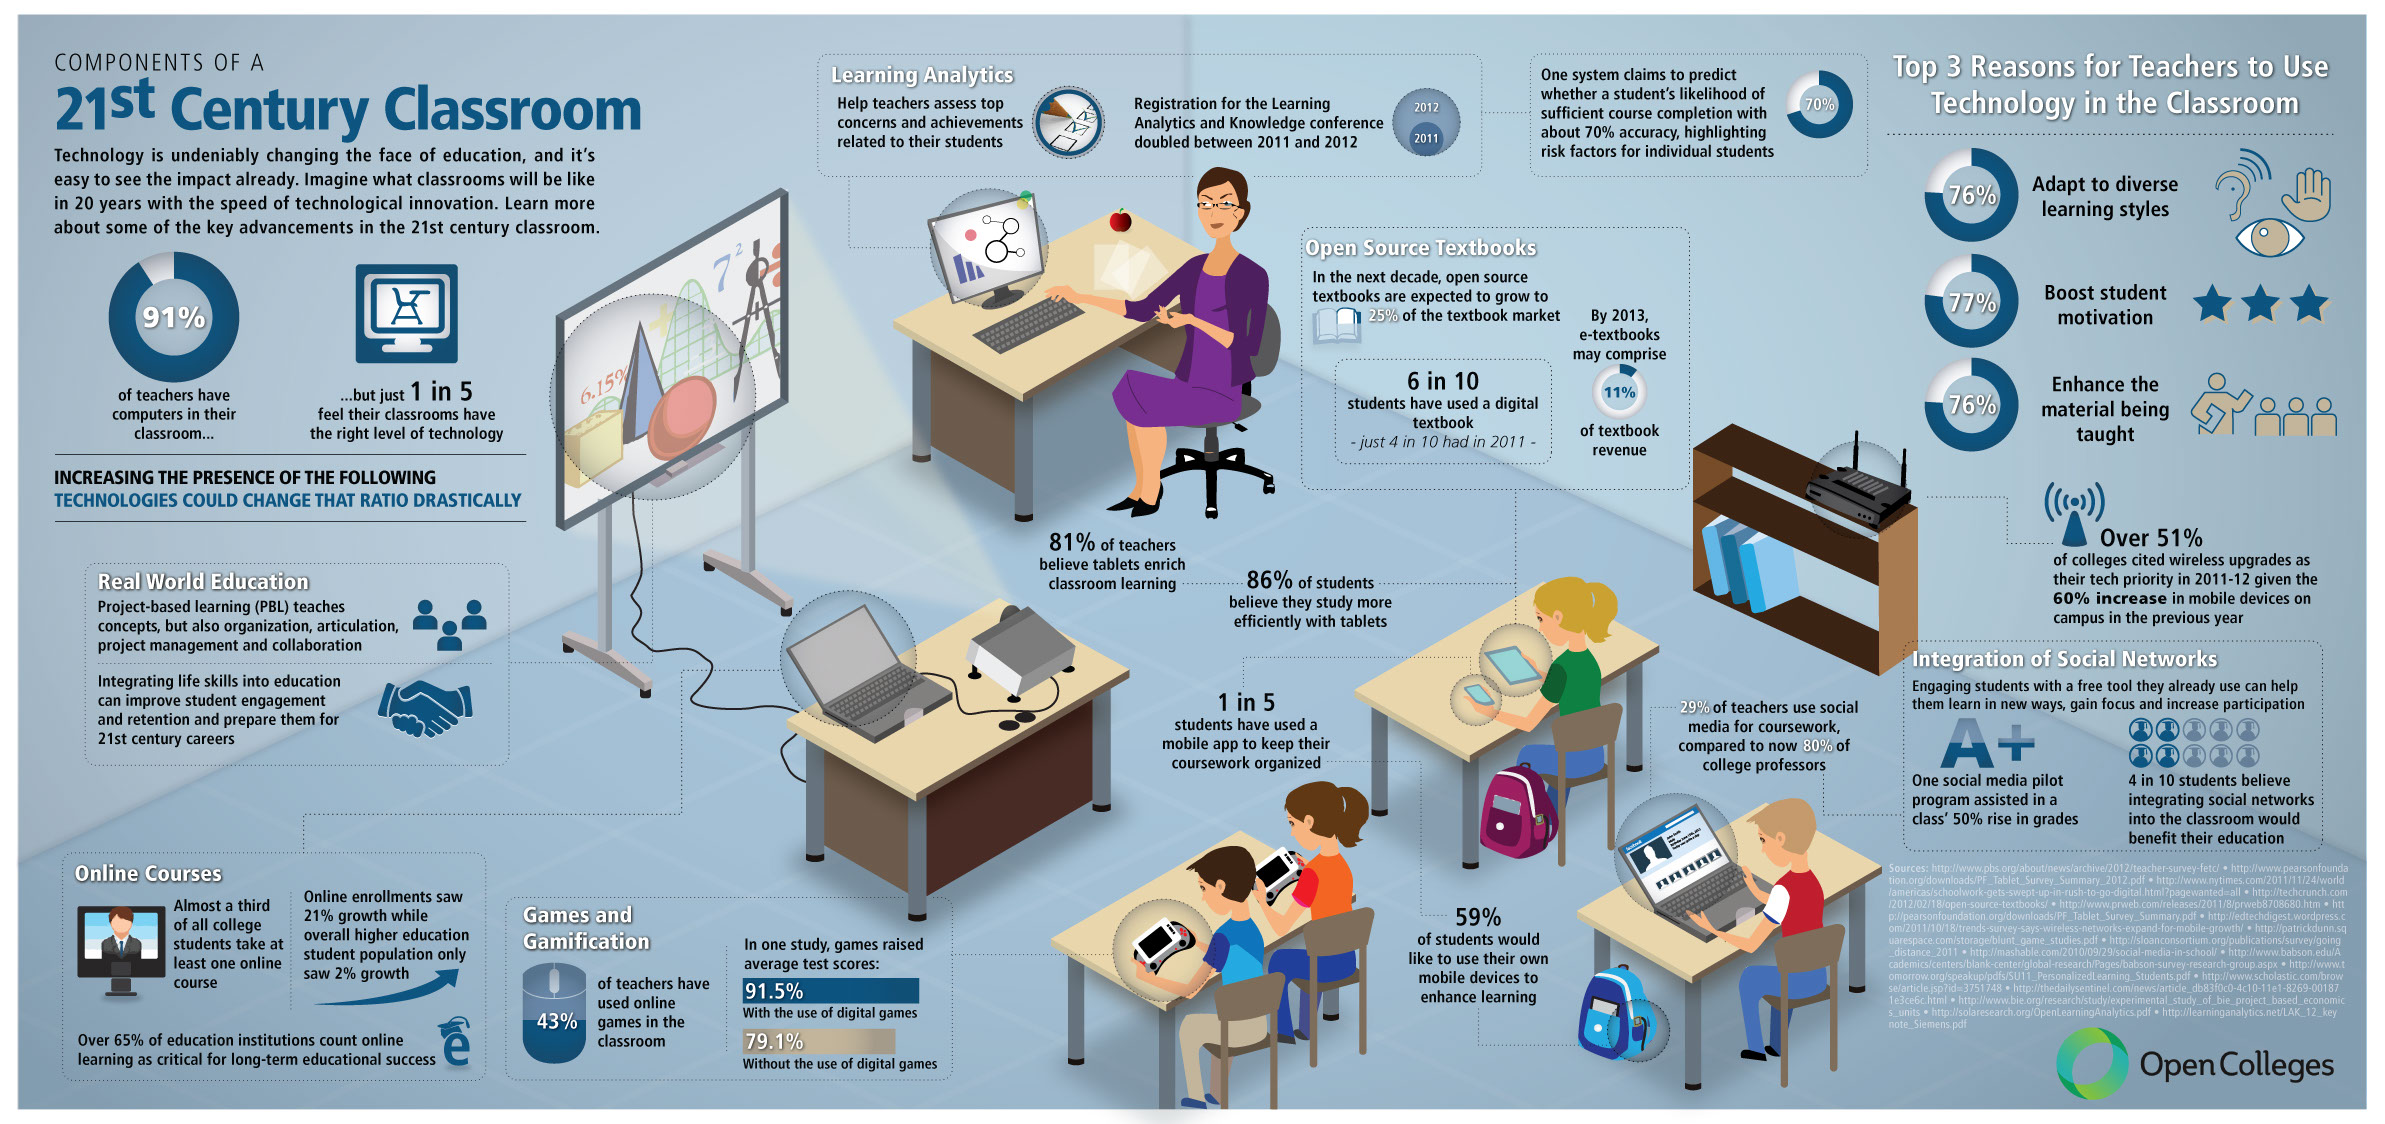 Technology in Classrooms-infographic